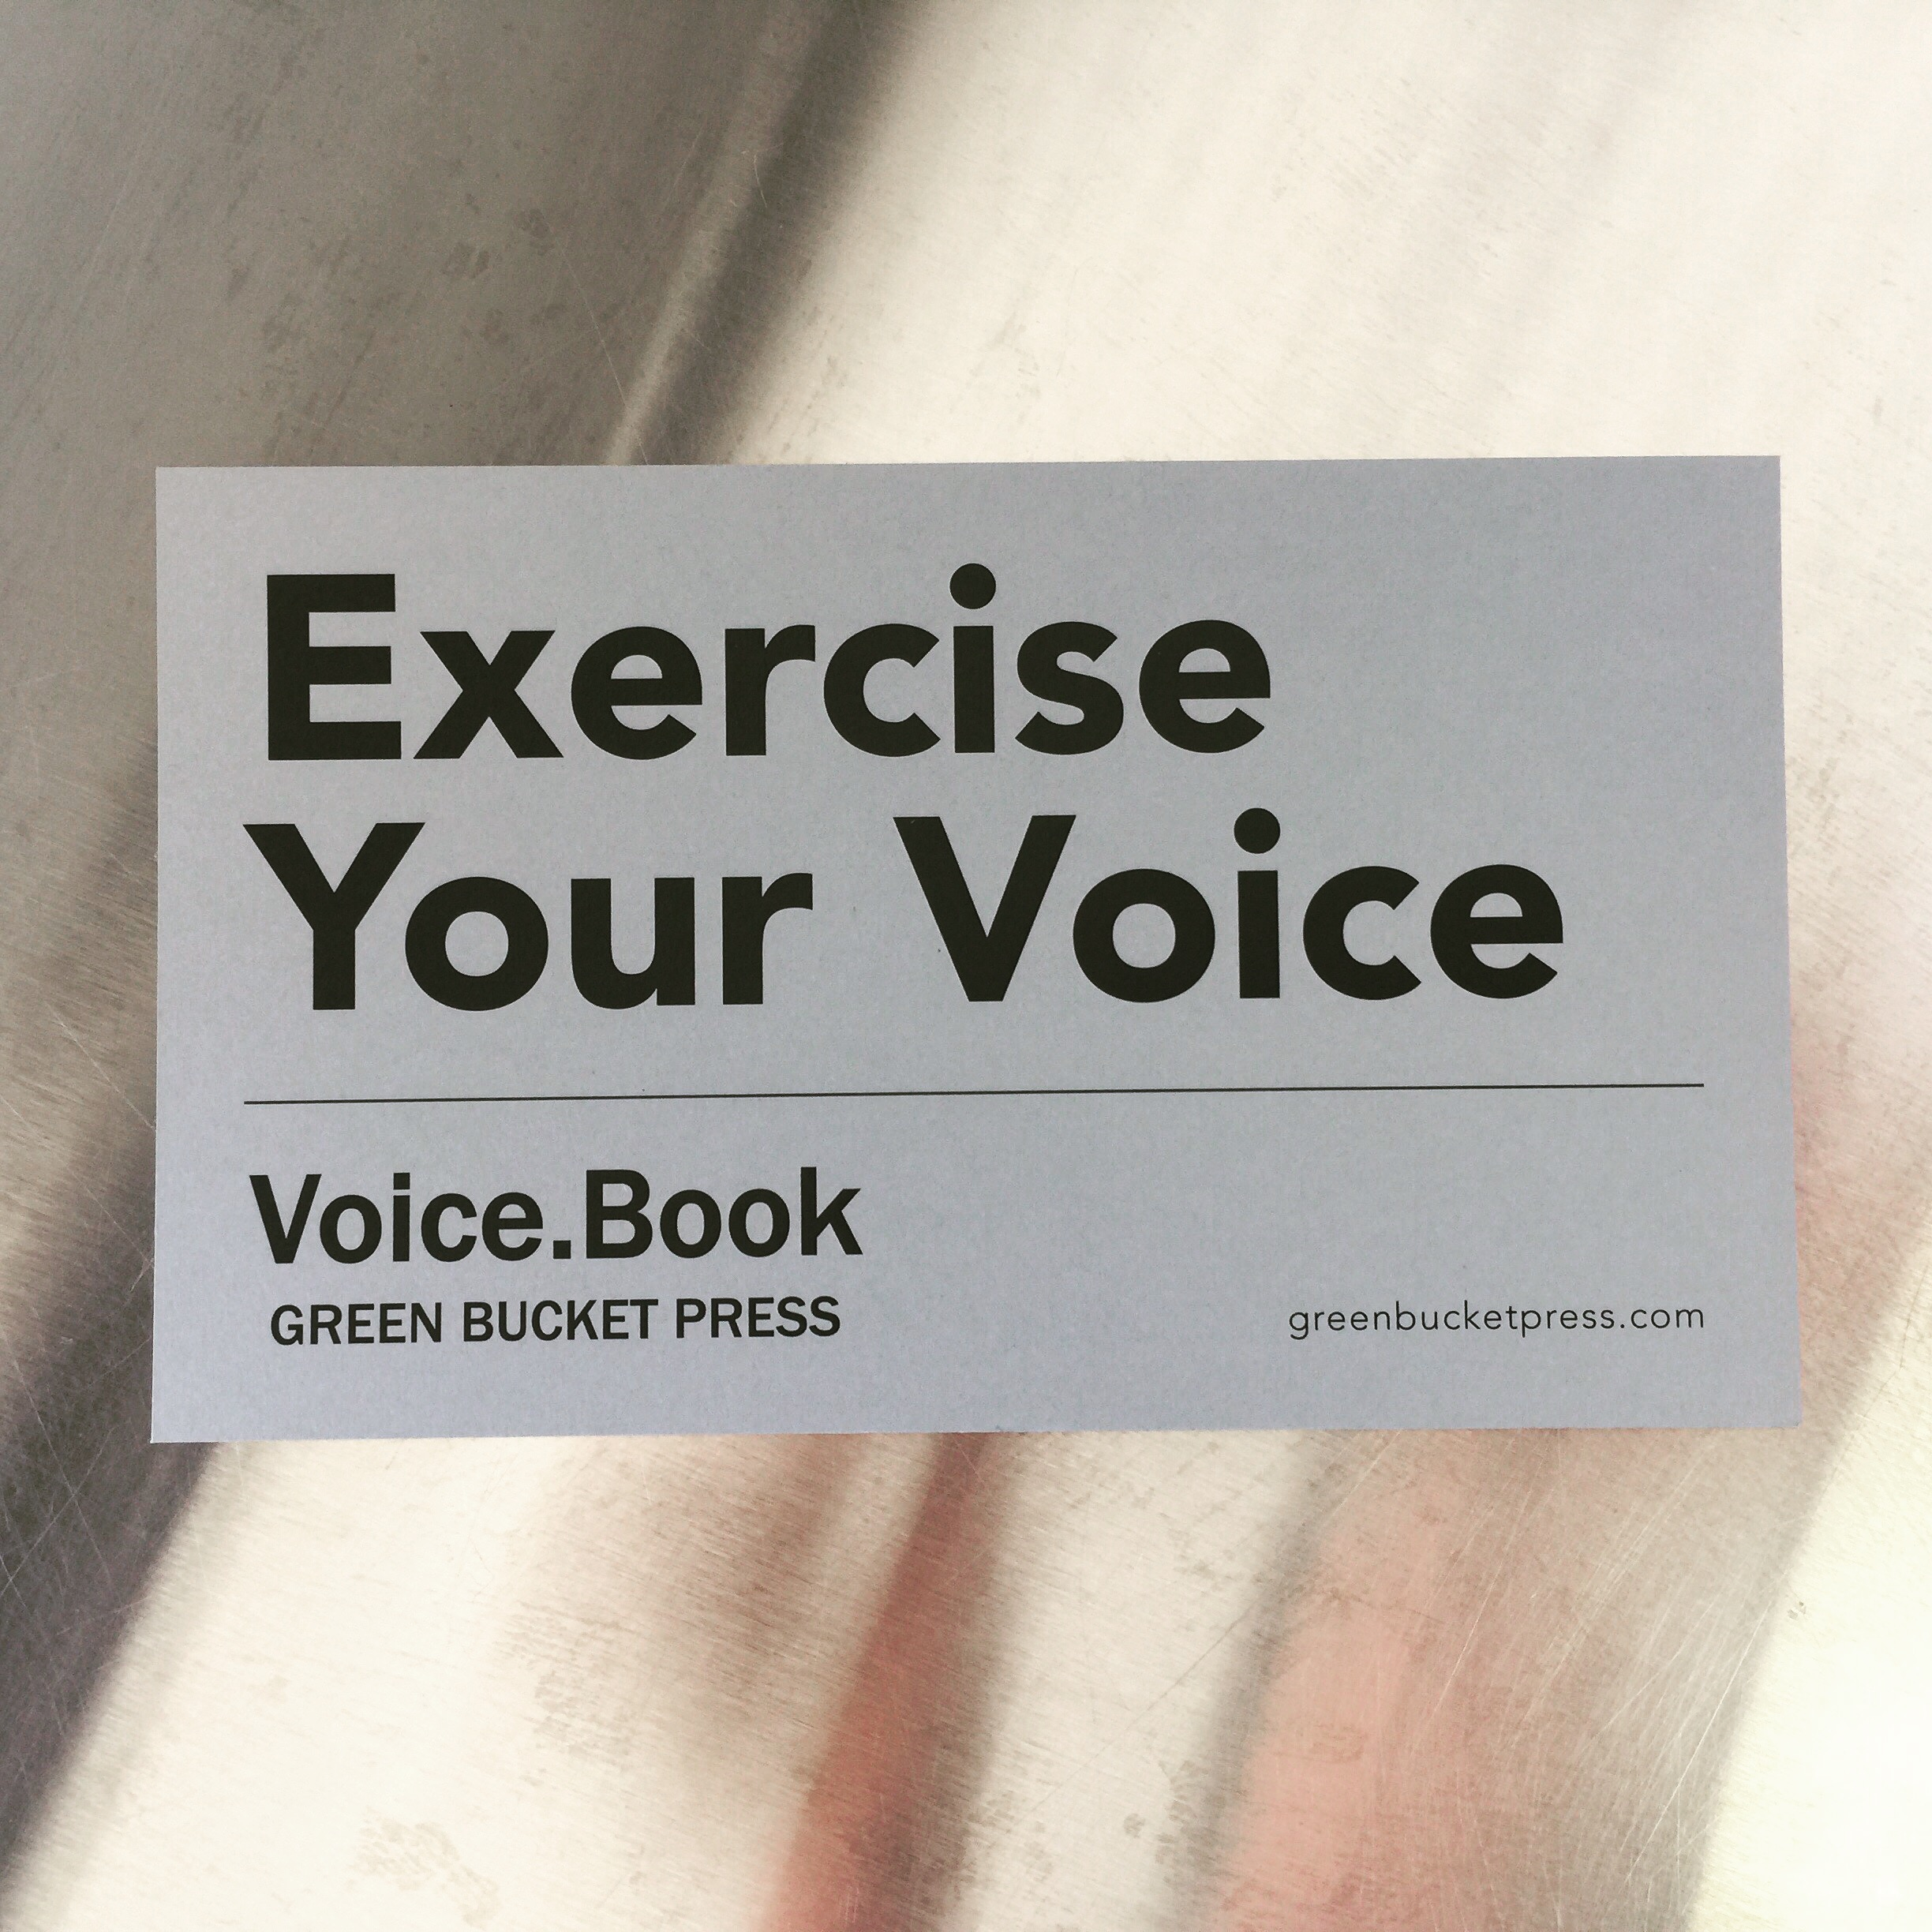 The Voice.Book Classic